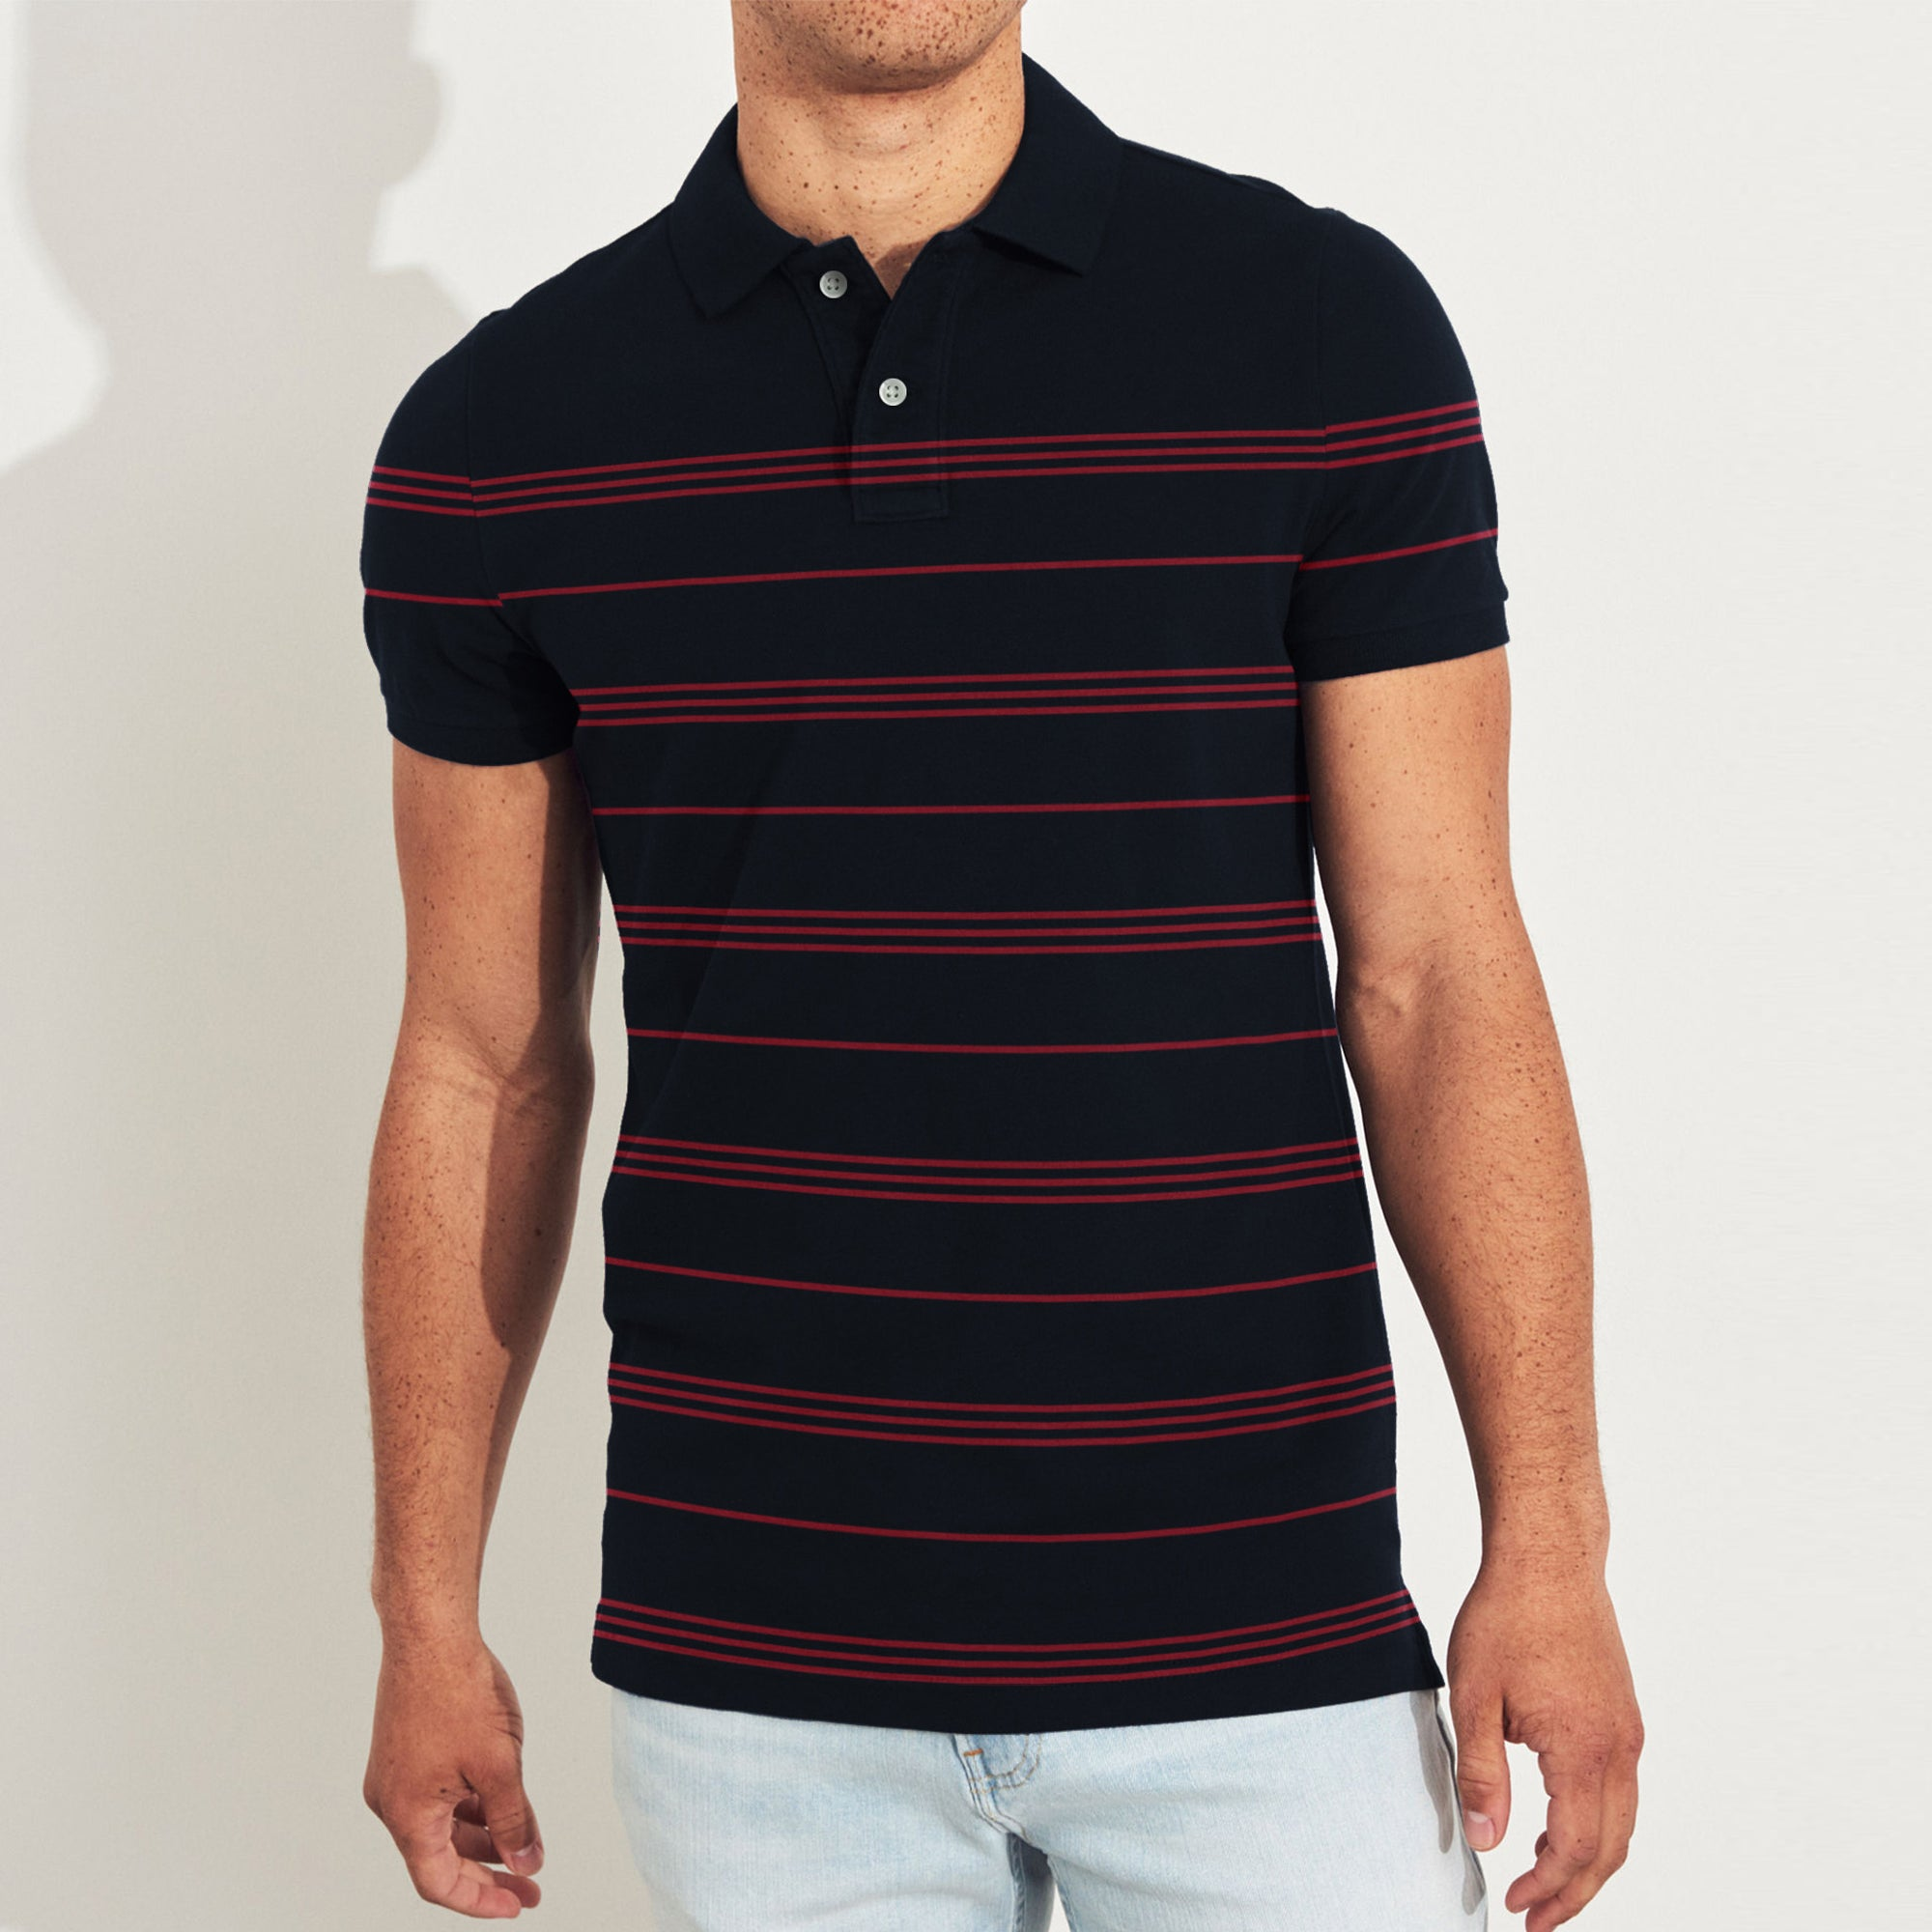 The Modern Short Sleeve P.Q Polo Shirt For Men-Dark Navy & Red Stripe-BE8396